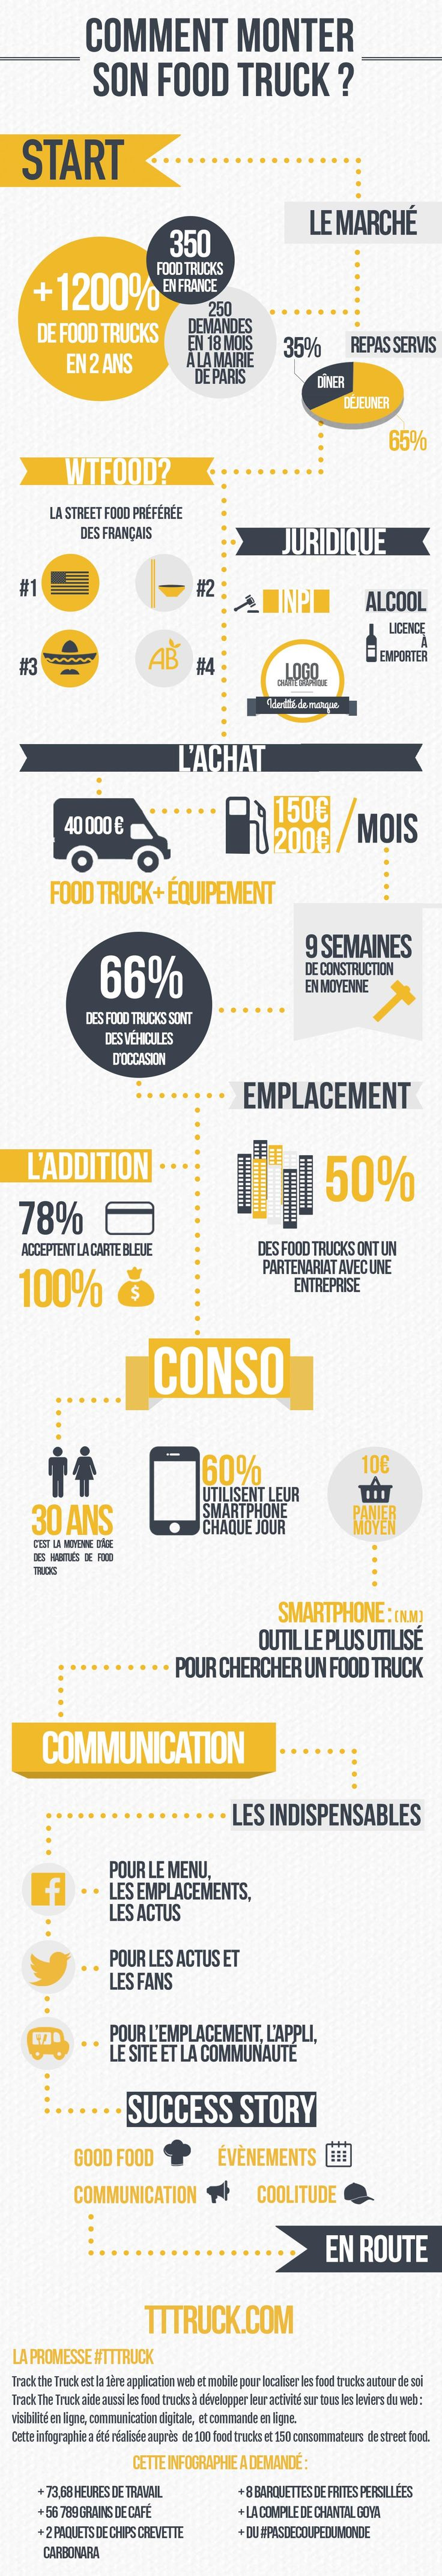 Comment monter son foodtruck - infographie - Track The Truck